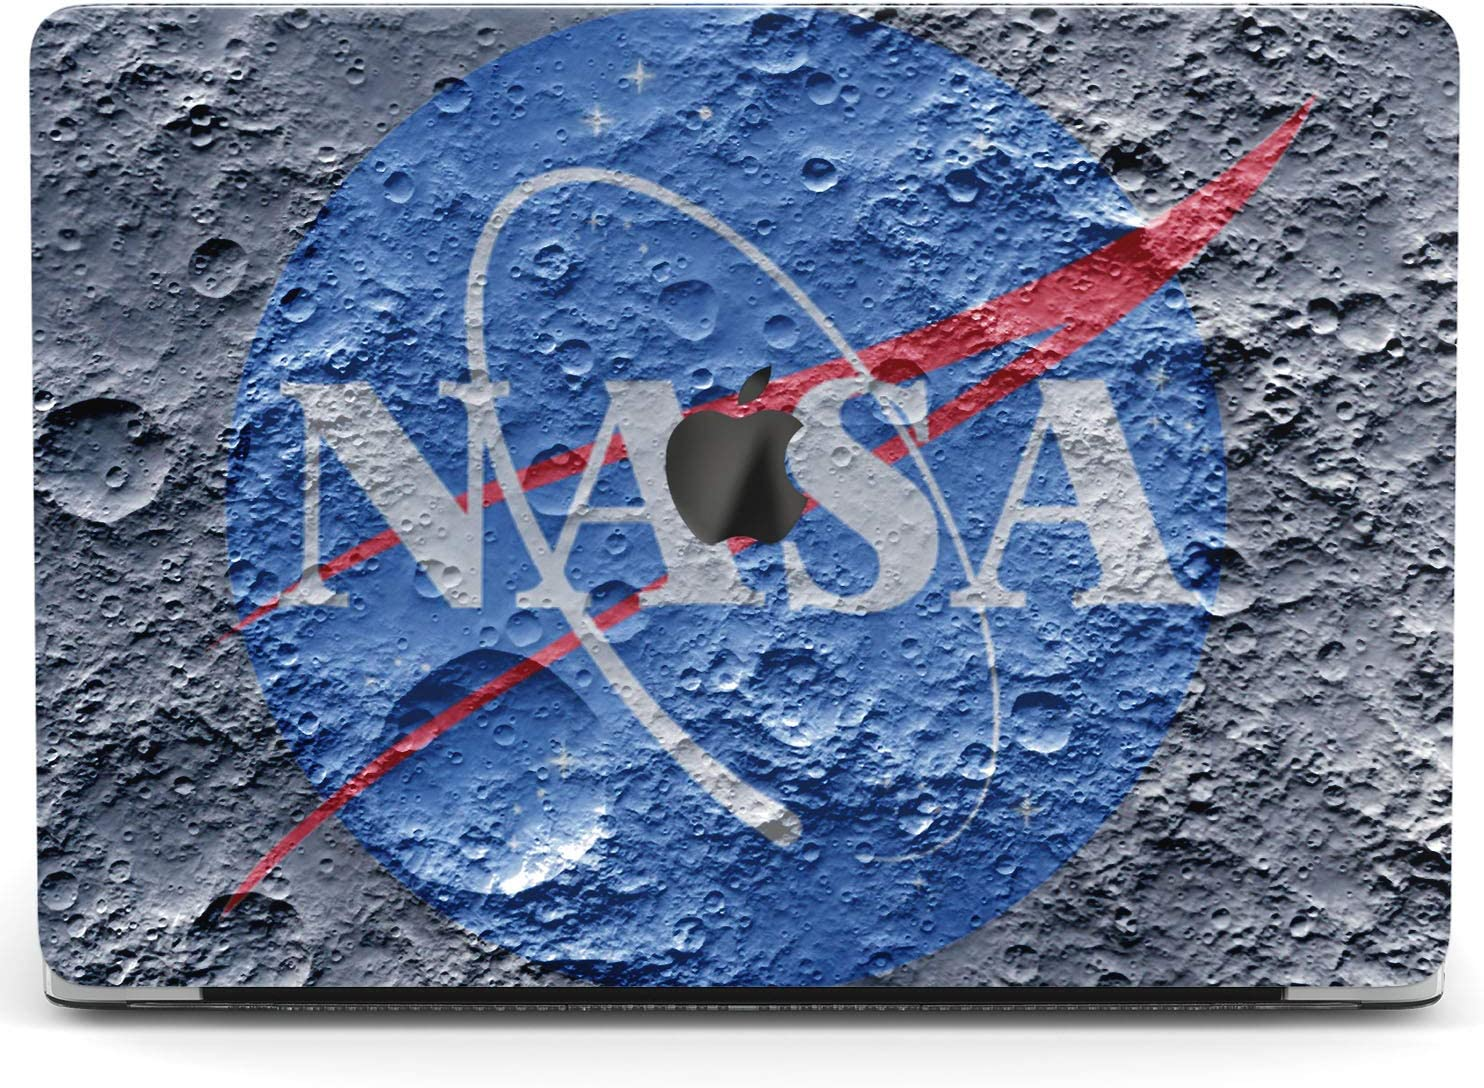 Wonder Wild Case For MacBook Air 13 inch Pro 15 2019 2018 Retina 12 11 Apple Hard Mac Protective Cover Touch Bar 2017 2016 2020 Plastic Laptop Print NASA Logo Moon Surface Texture Science Lunar Planet